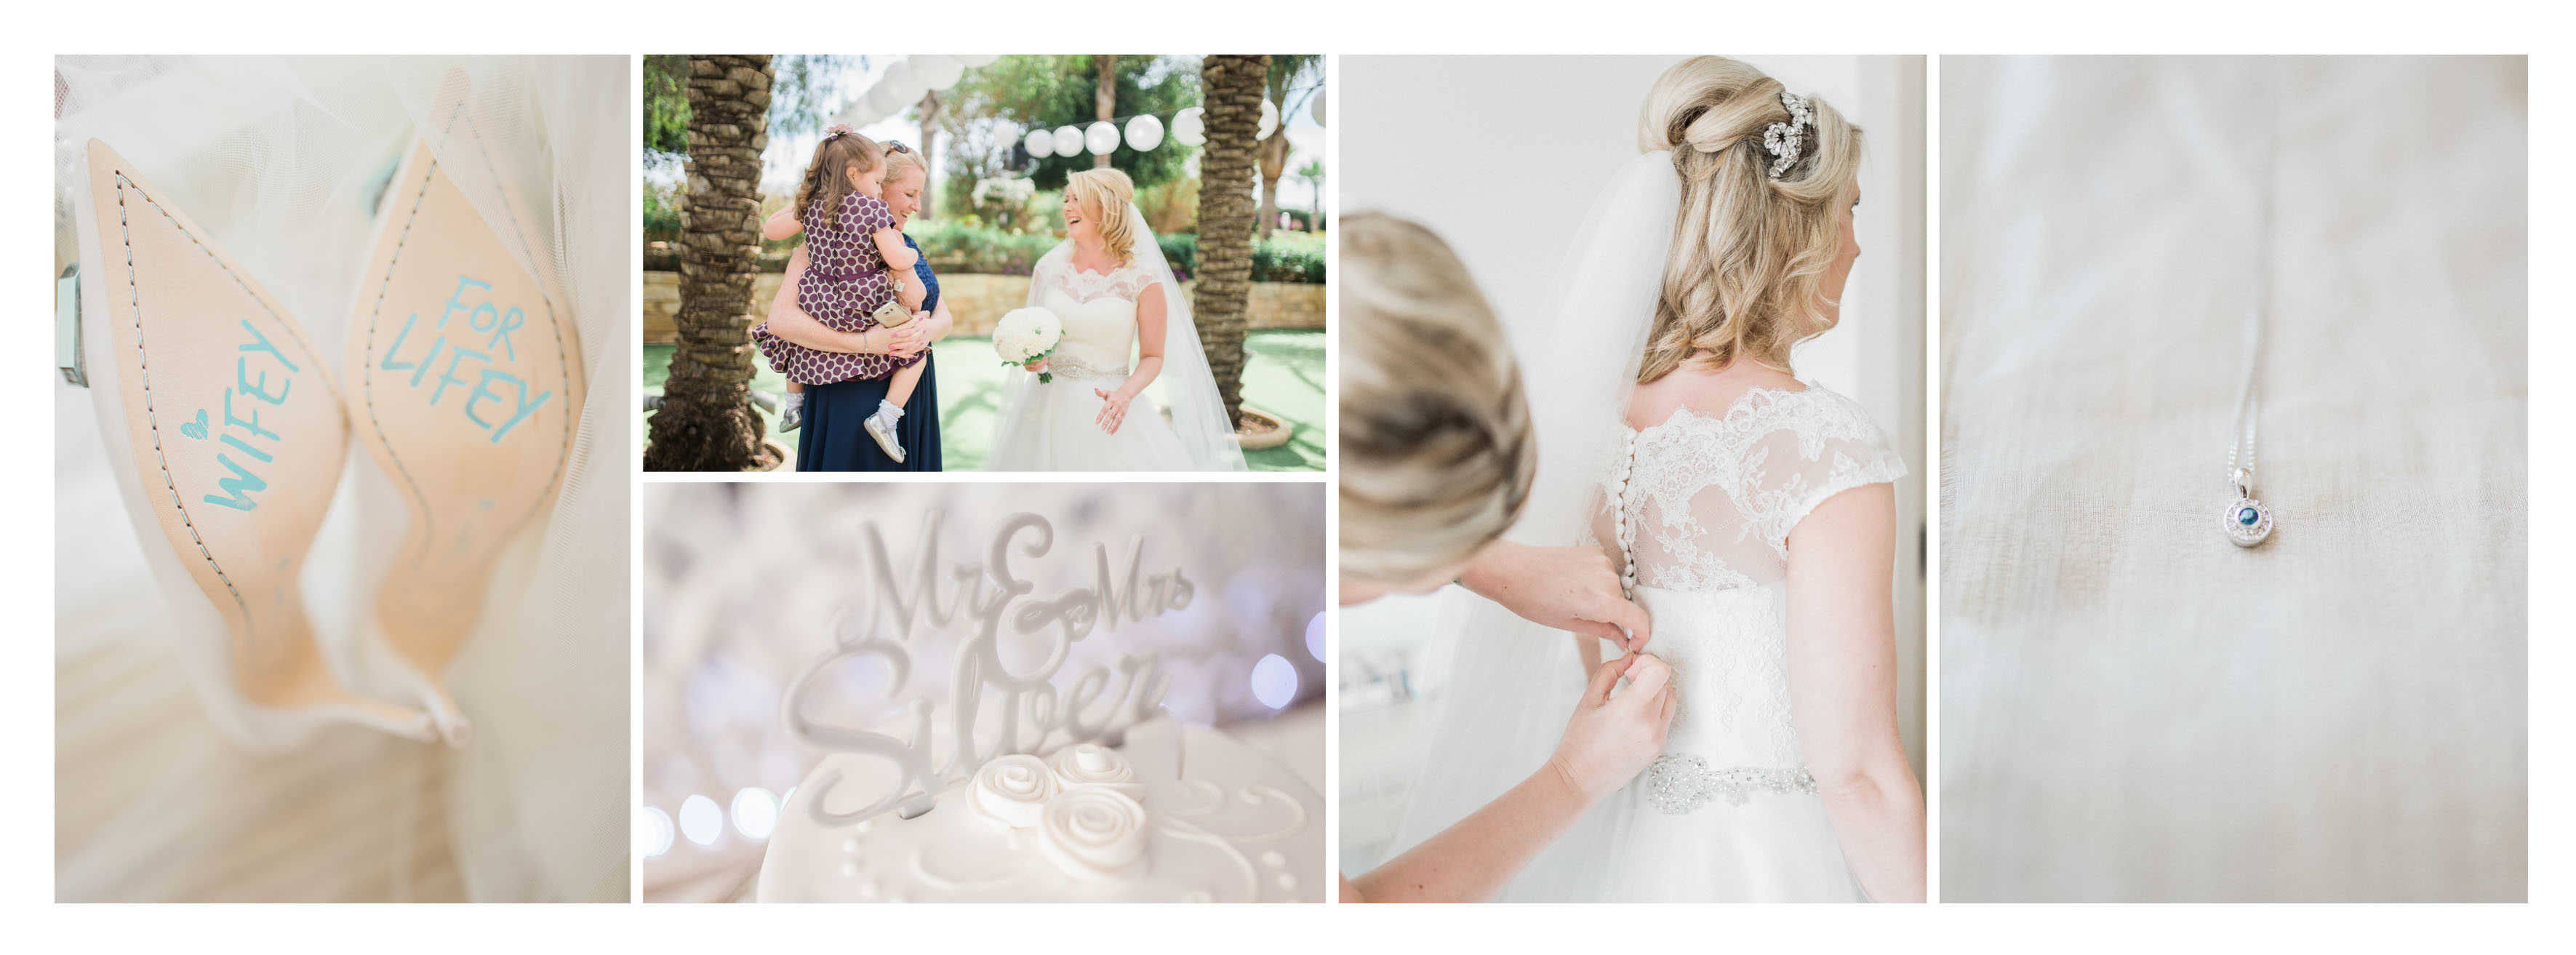 Destination Wedding Photographer Cyprus Harrogate